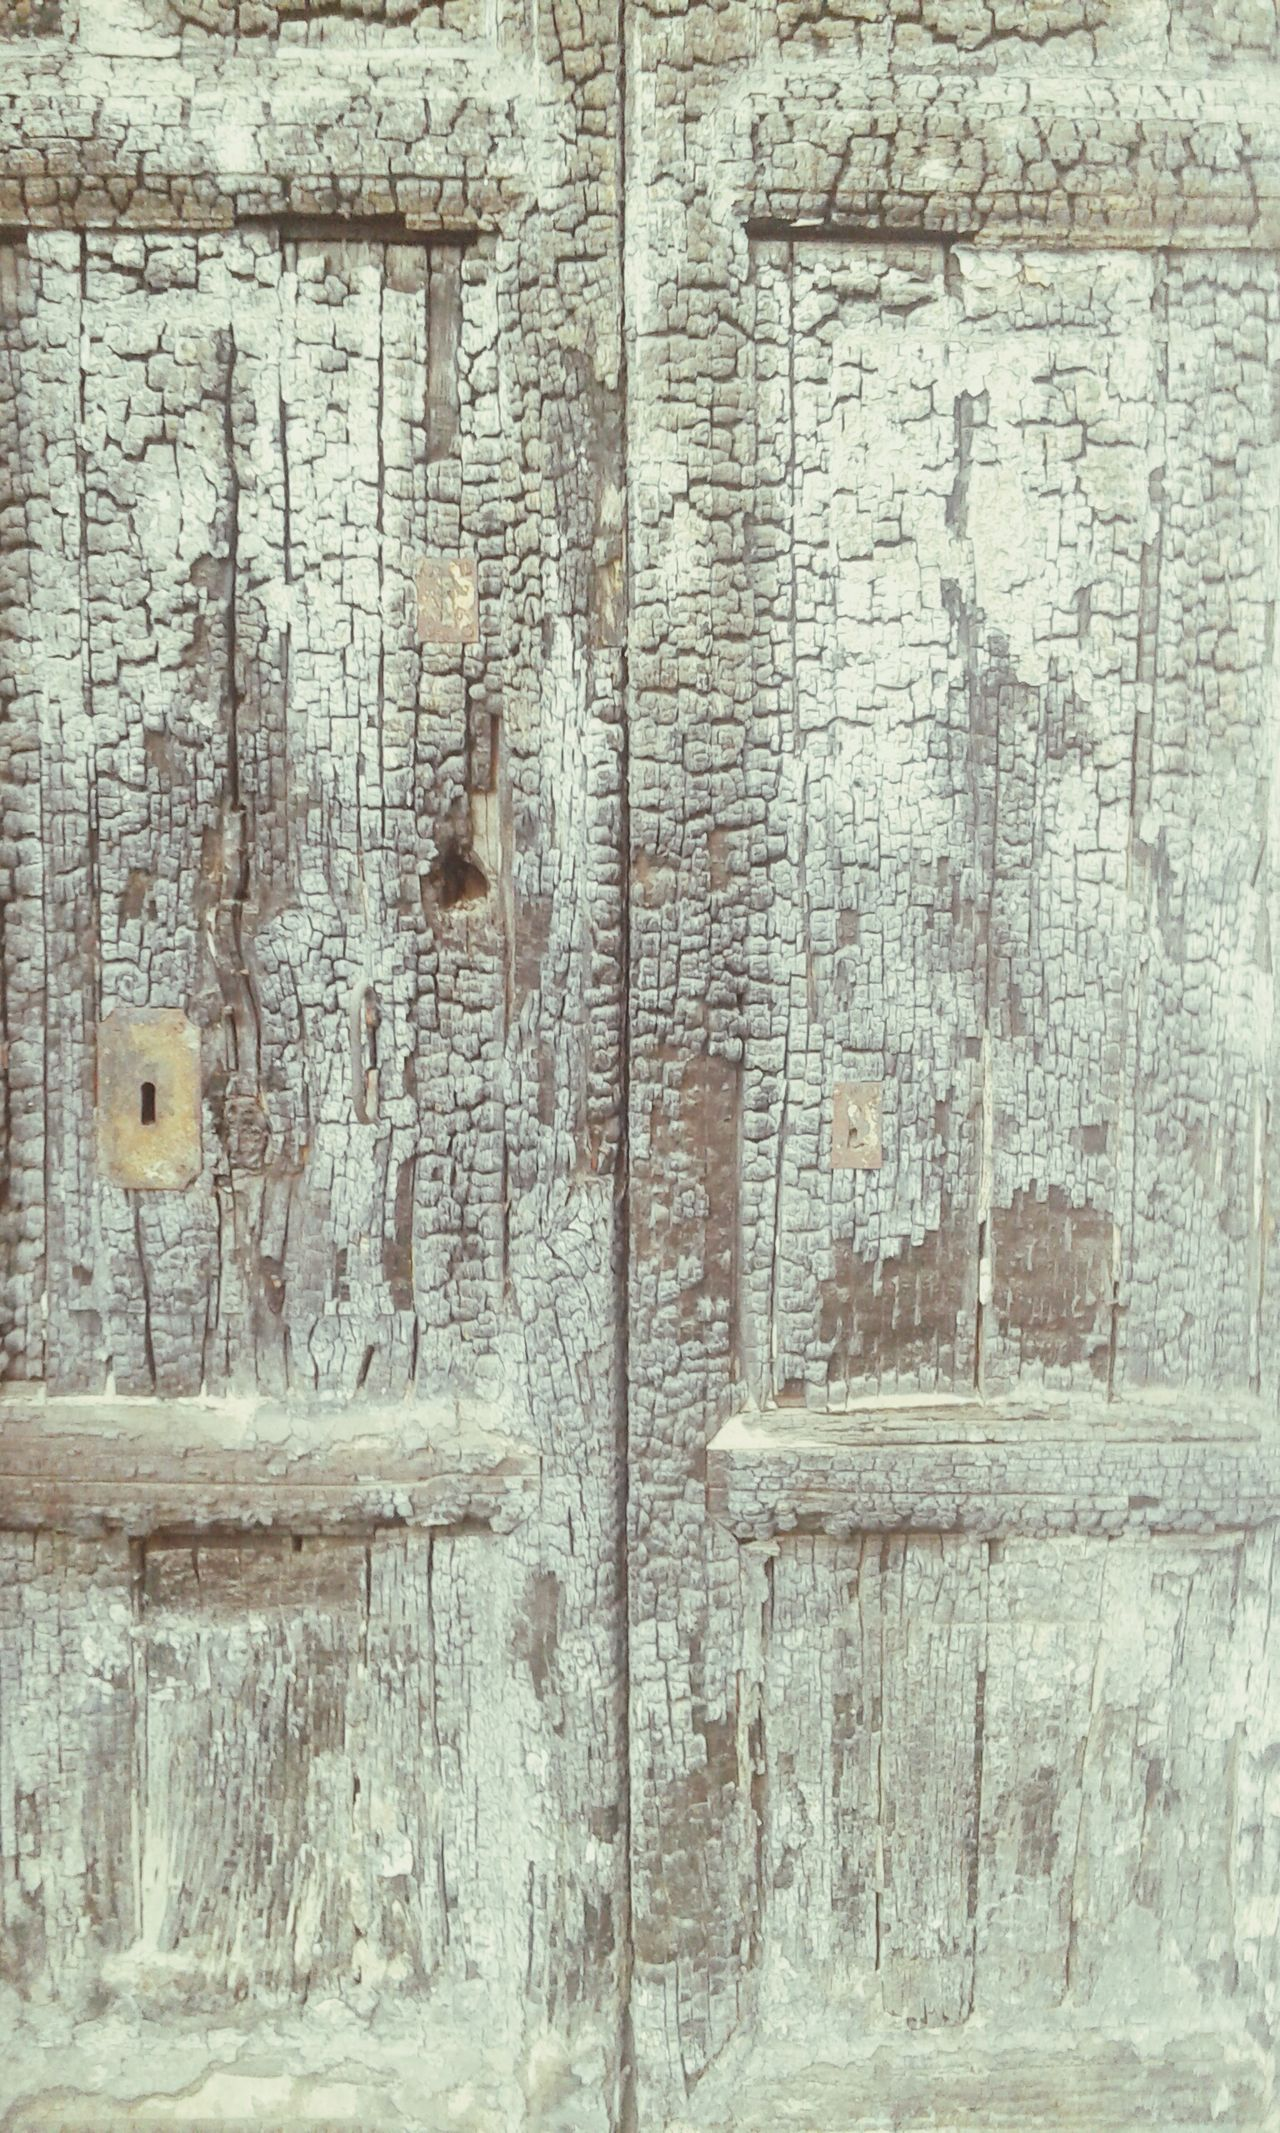 Burned Door Doors EyeEm Best Shots EyeEmBestPics Eye4photography  Textures Textures And Surfaces